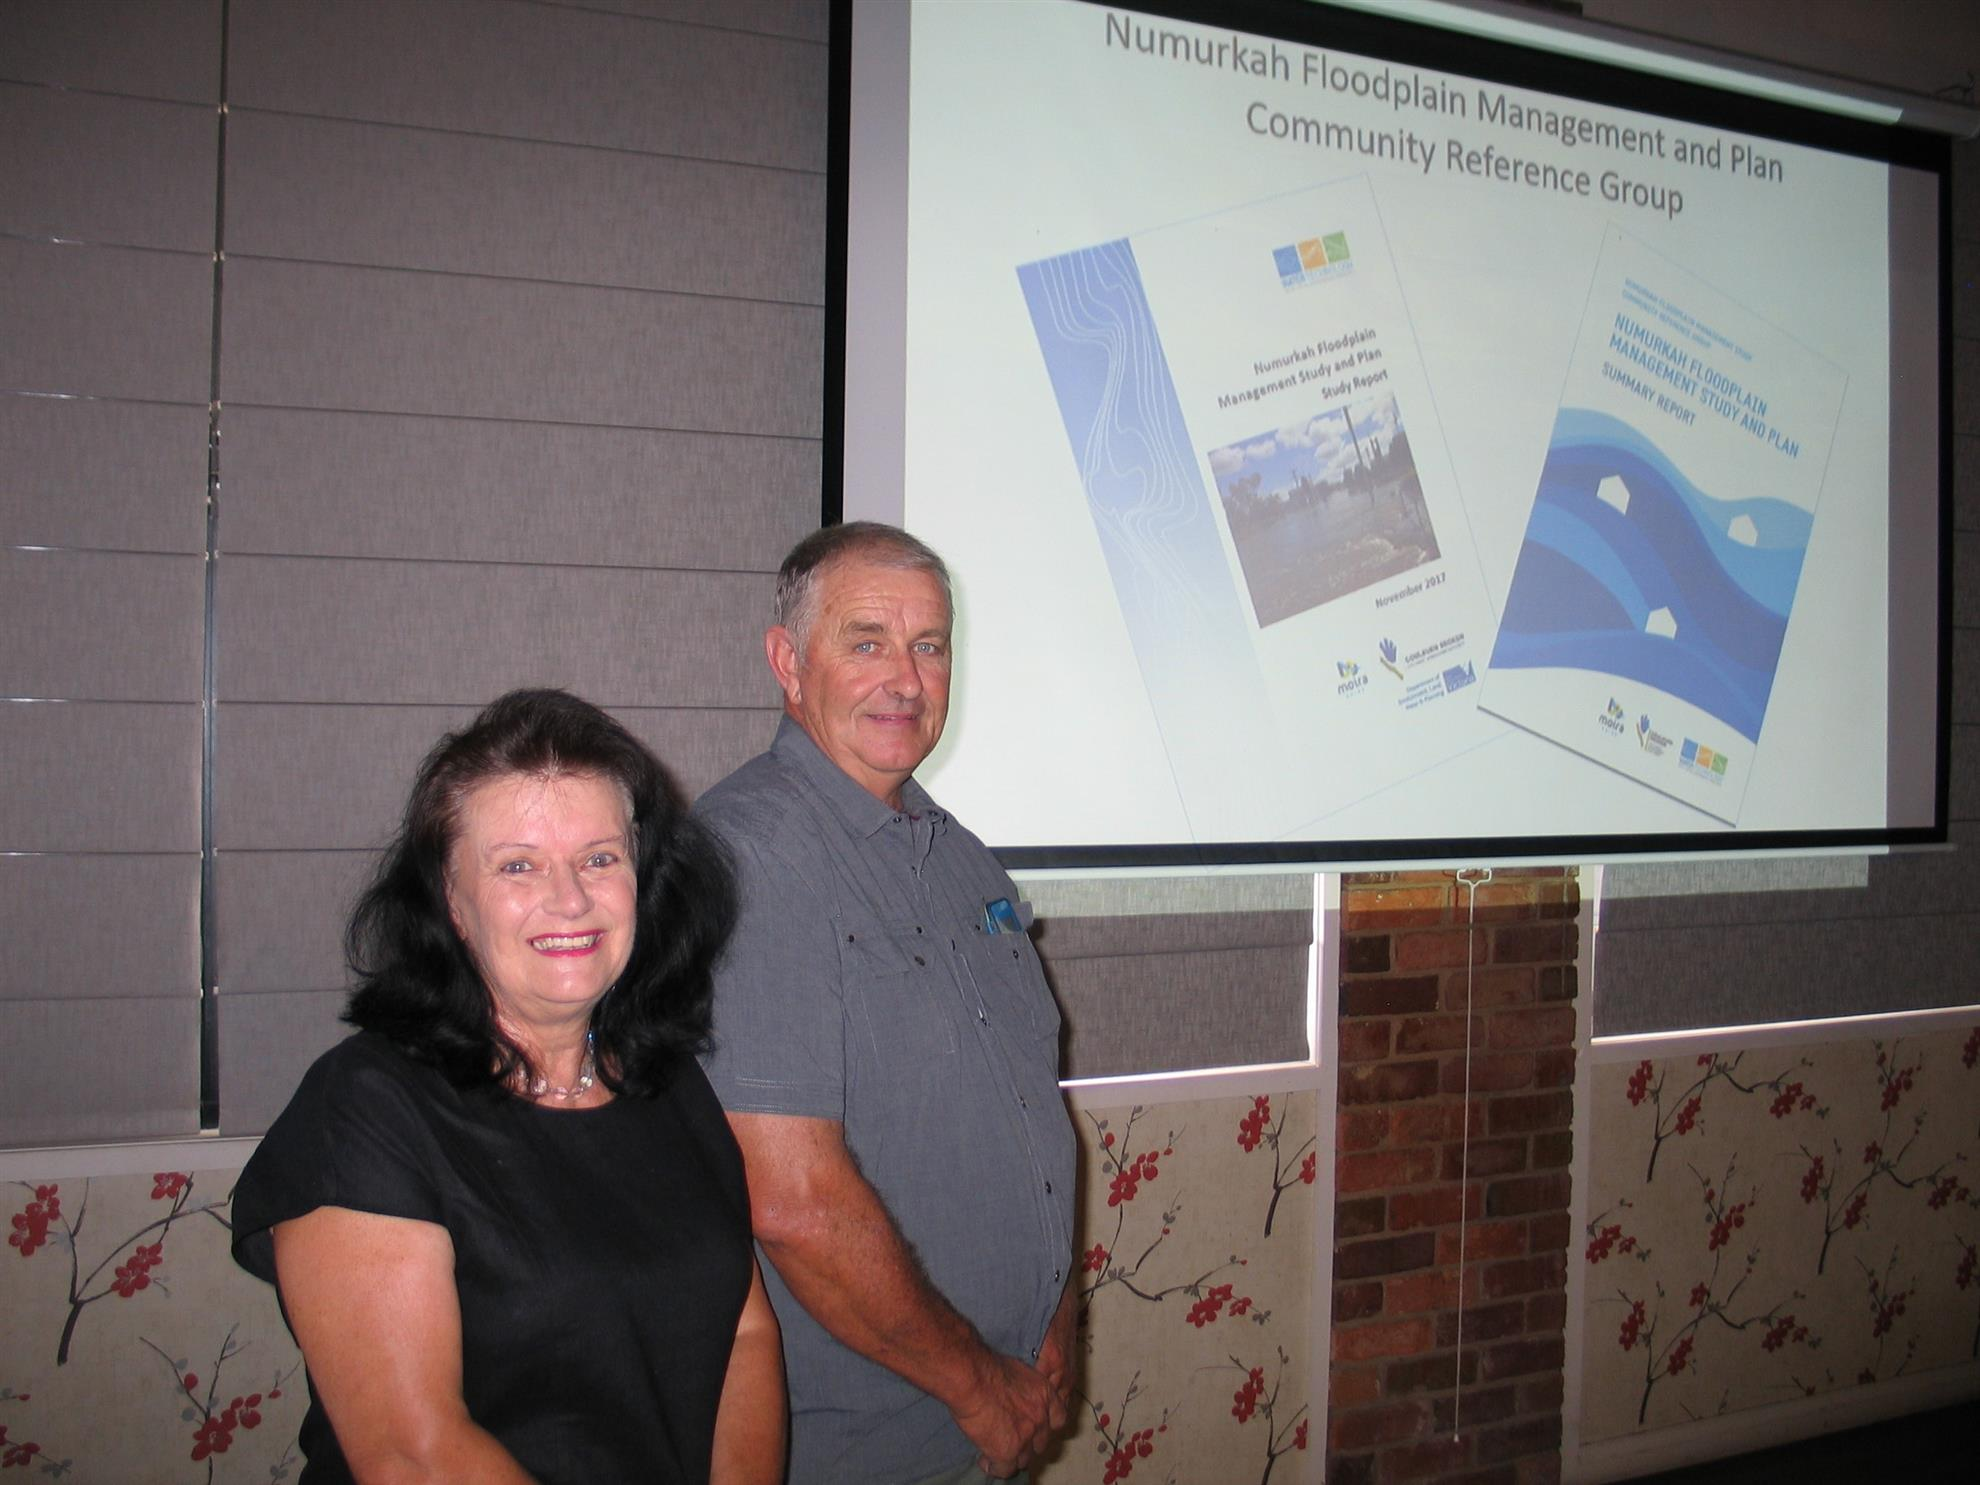 Stories Rotary Club Of Numurkah Group Shop Cheap From China Suppliers At Alwaysbetter On Peter Sprunt And Kerry Swan Members The Floodplain Community Reference Spoke To